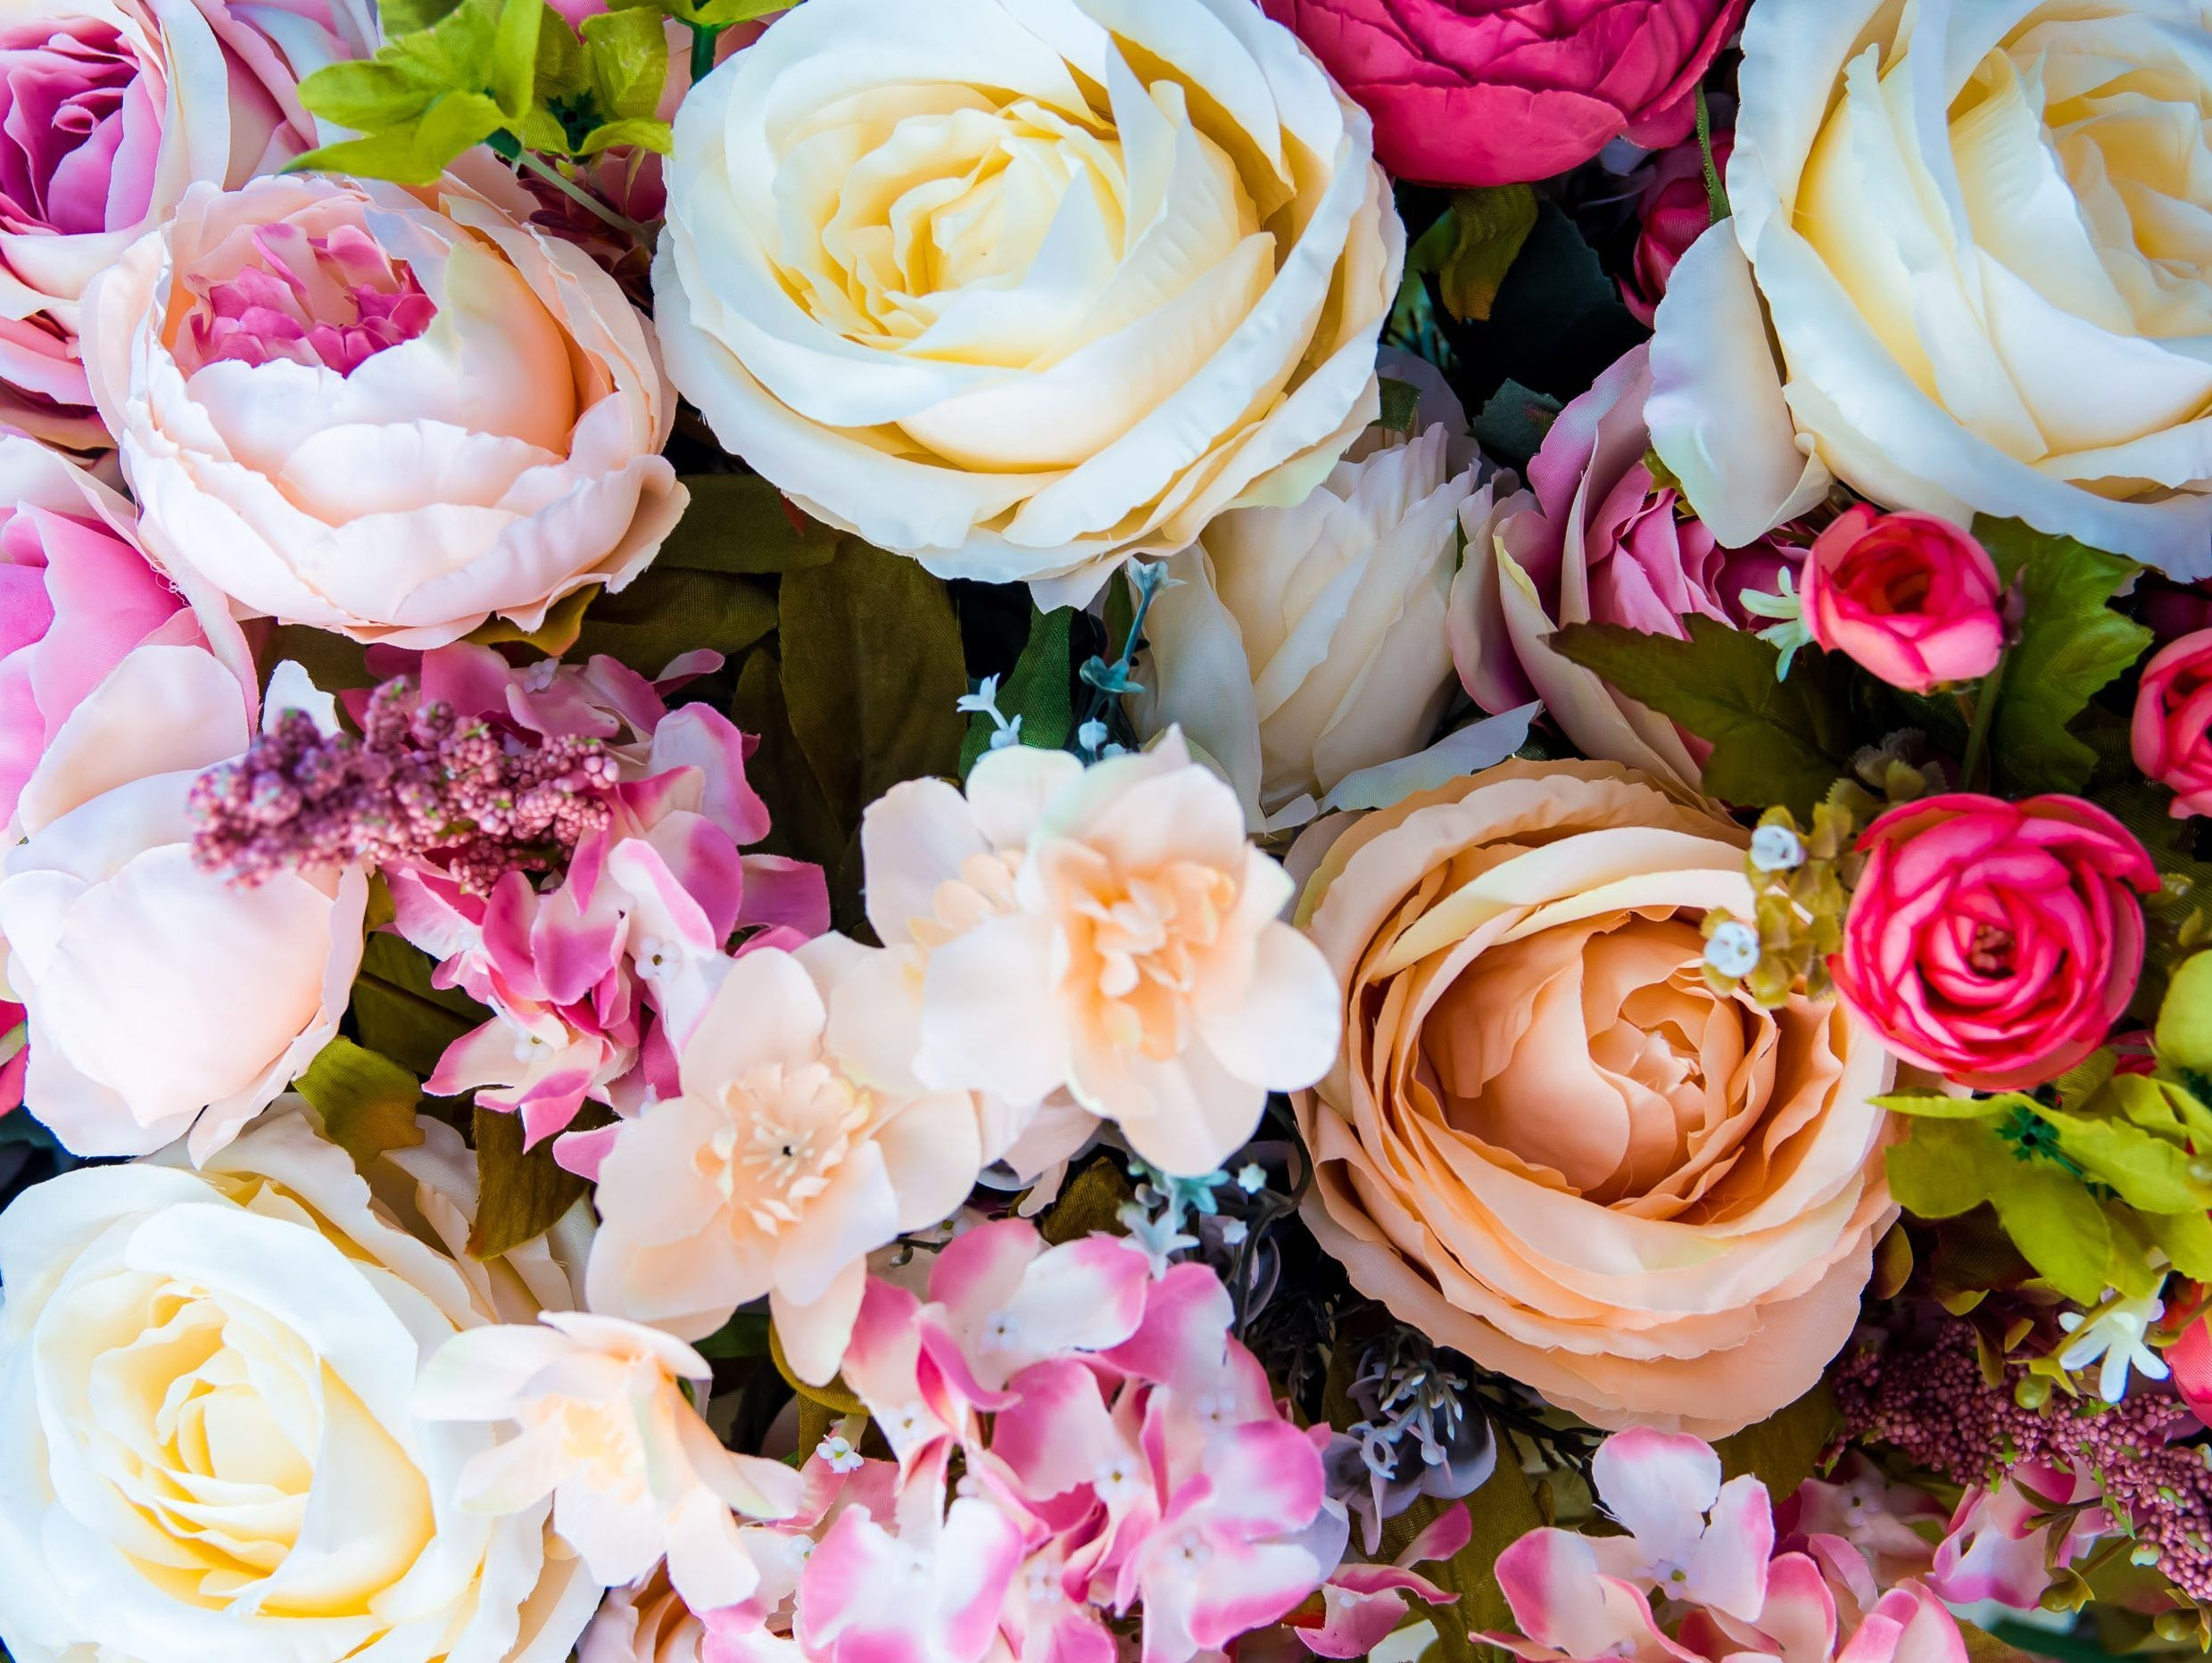 Prom, Mother's Day and wedding season are coming! Save on your next flower order.